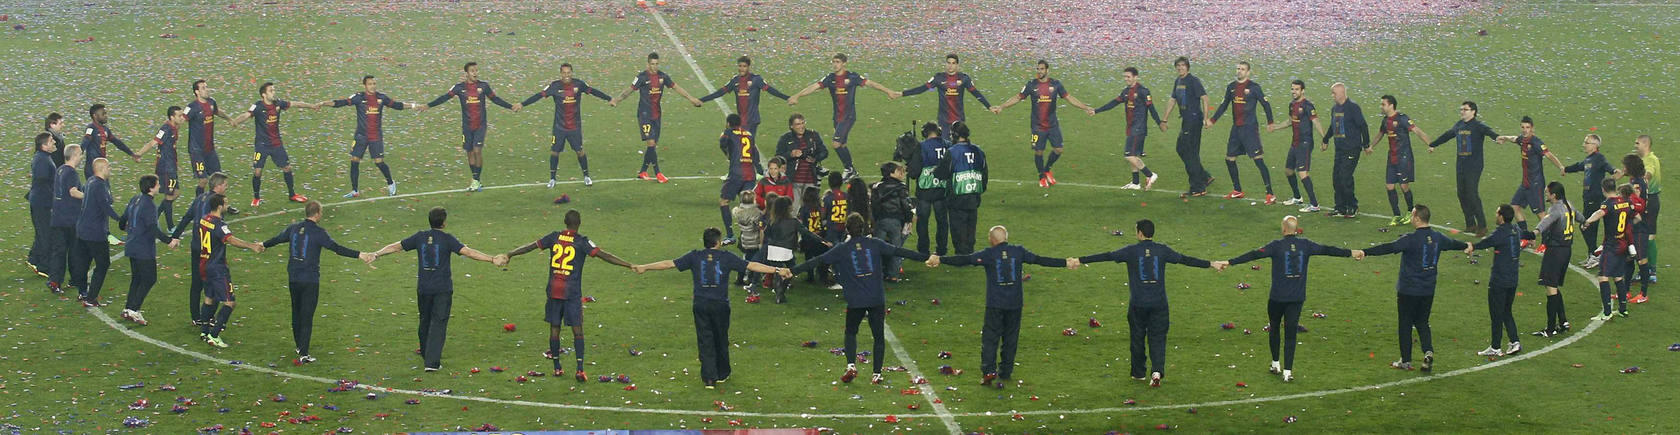 Las imgenes de la celebracin del ttulo de Liga del Barcelona